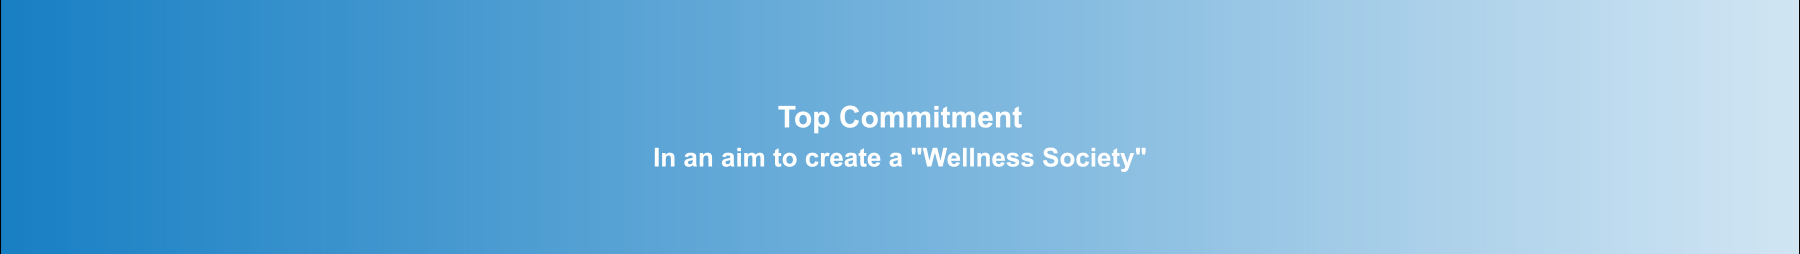 Top Commitment In an aim to create a 'Wellness Society'